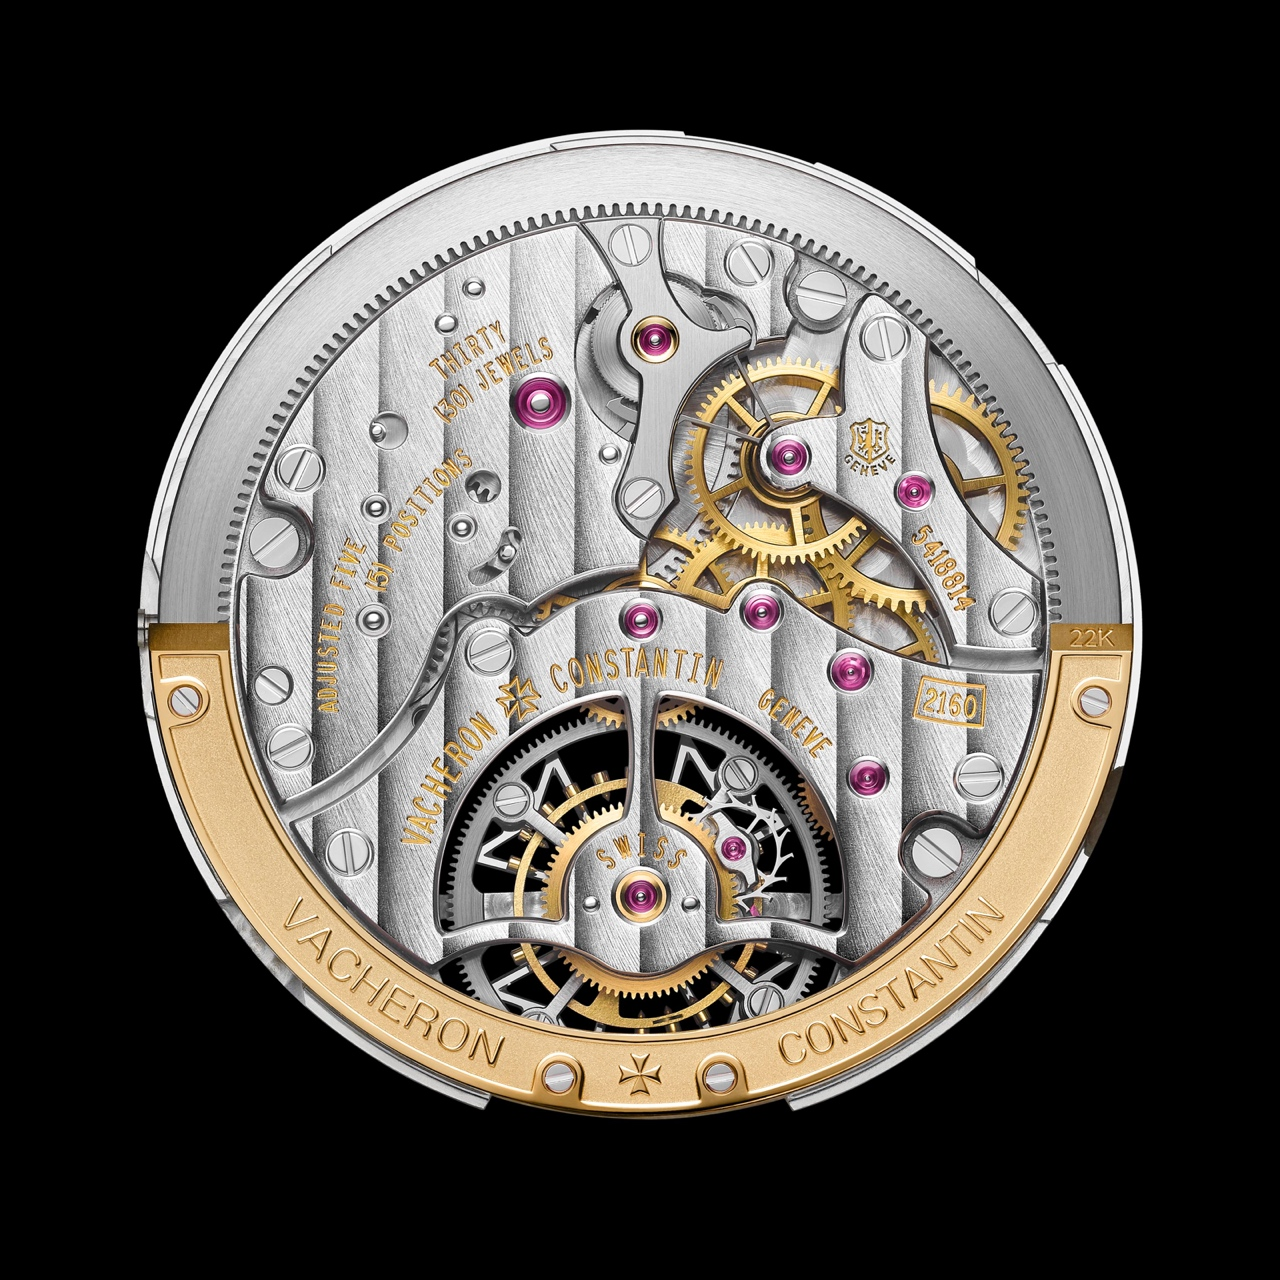 Vacheron Constantin Fiftysix Tourbillon - calibre 2160